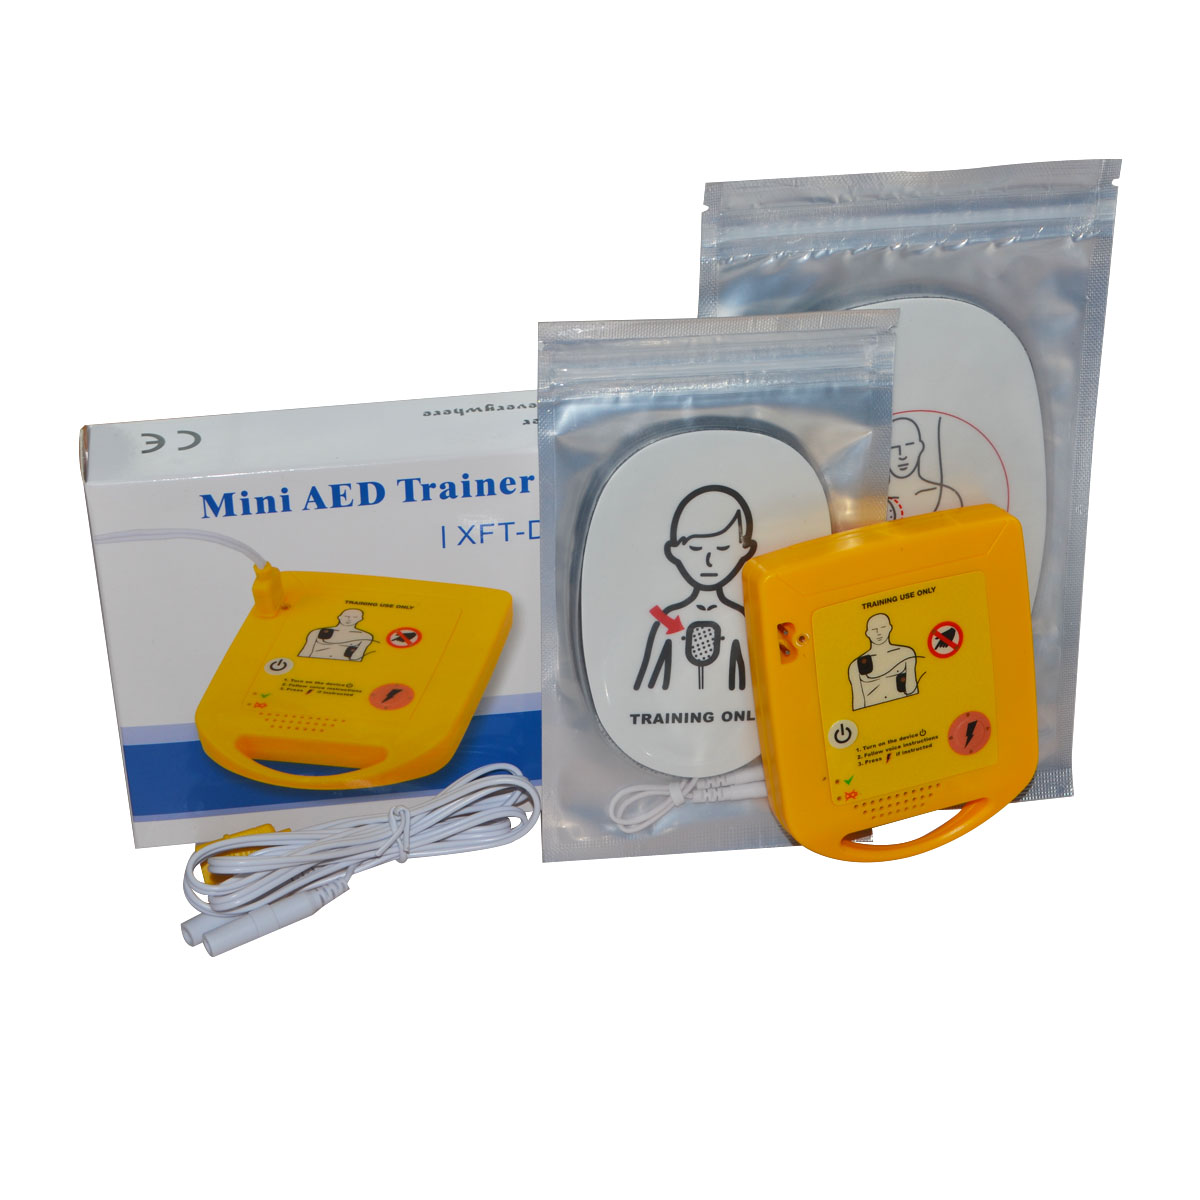 AED Trainer Mini Automatic External Defibrillator XFT First Aid Training Kit Training Machine In Spanish + 1 CPR Face Shield